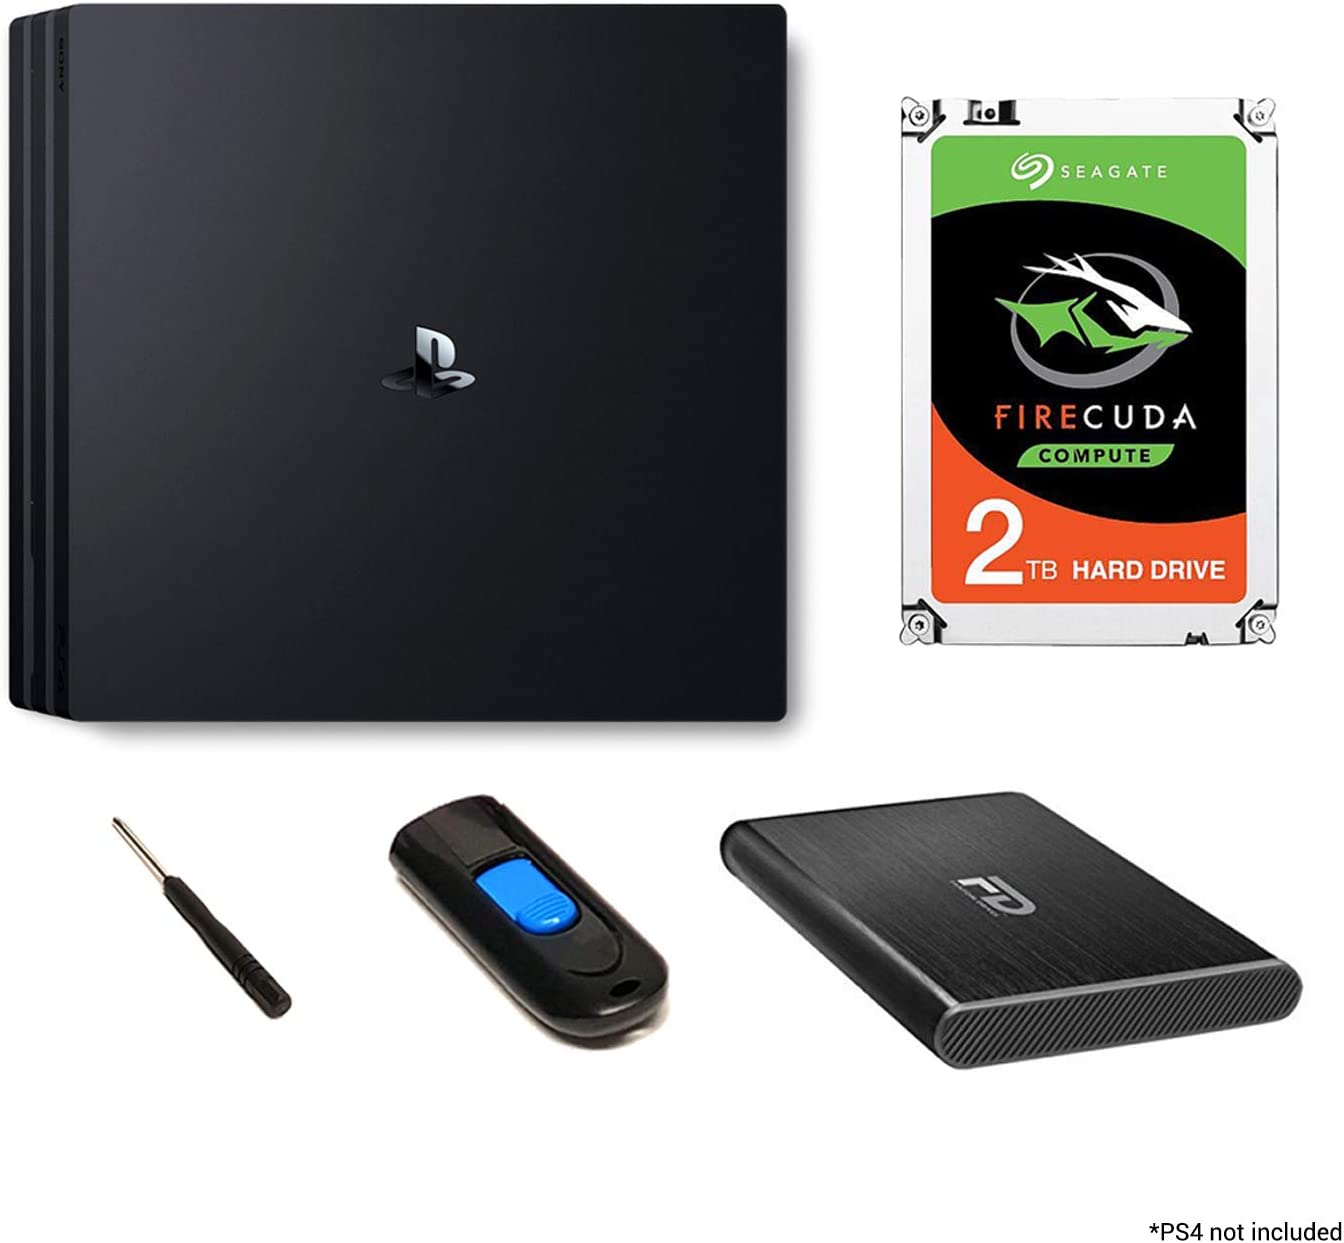 Fantom Drives 2TB PS4 SSHD (Solid State Hybrid Drive/SSD+HDD) Upgrade Kit - Seagate Firecuda - Compatible with PlayStation 4, PS4 Slim, and PS4 Pro